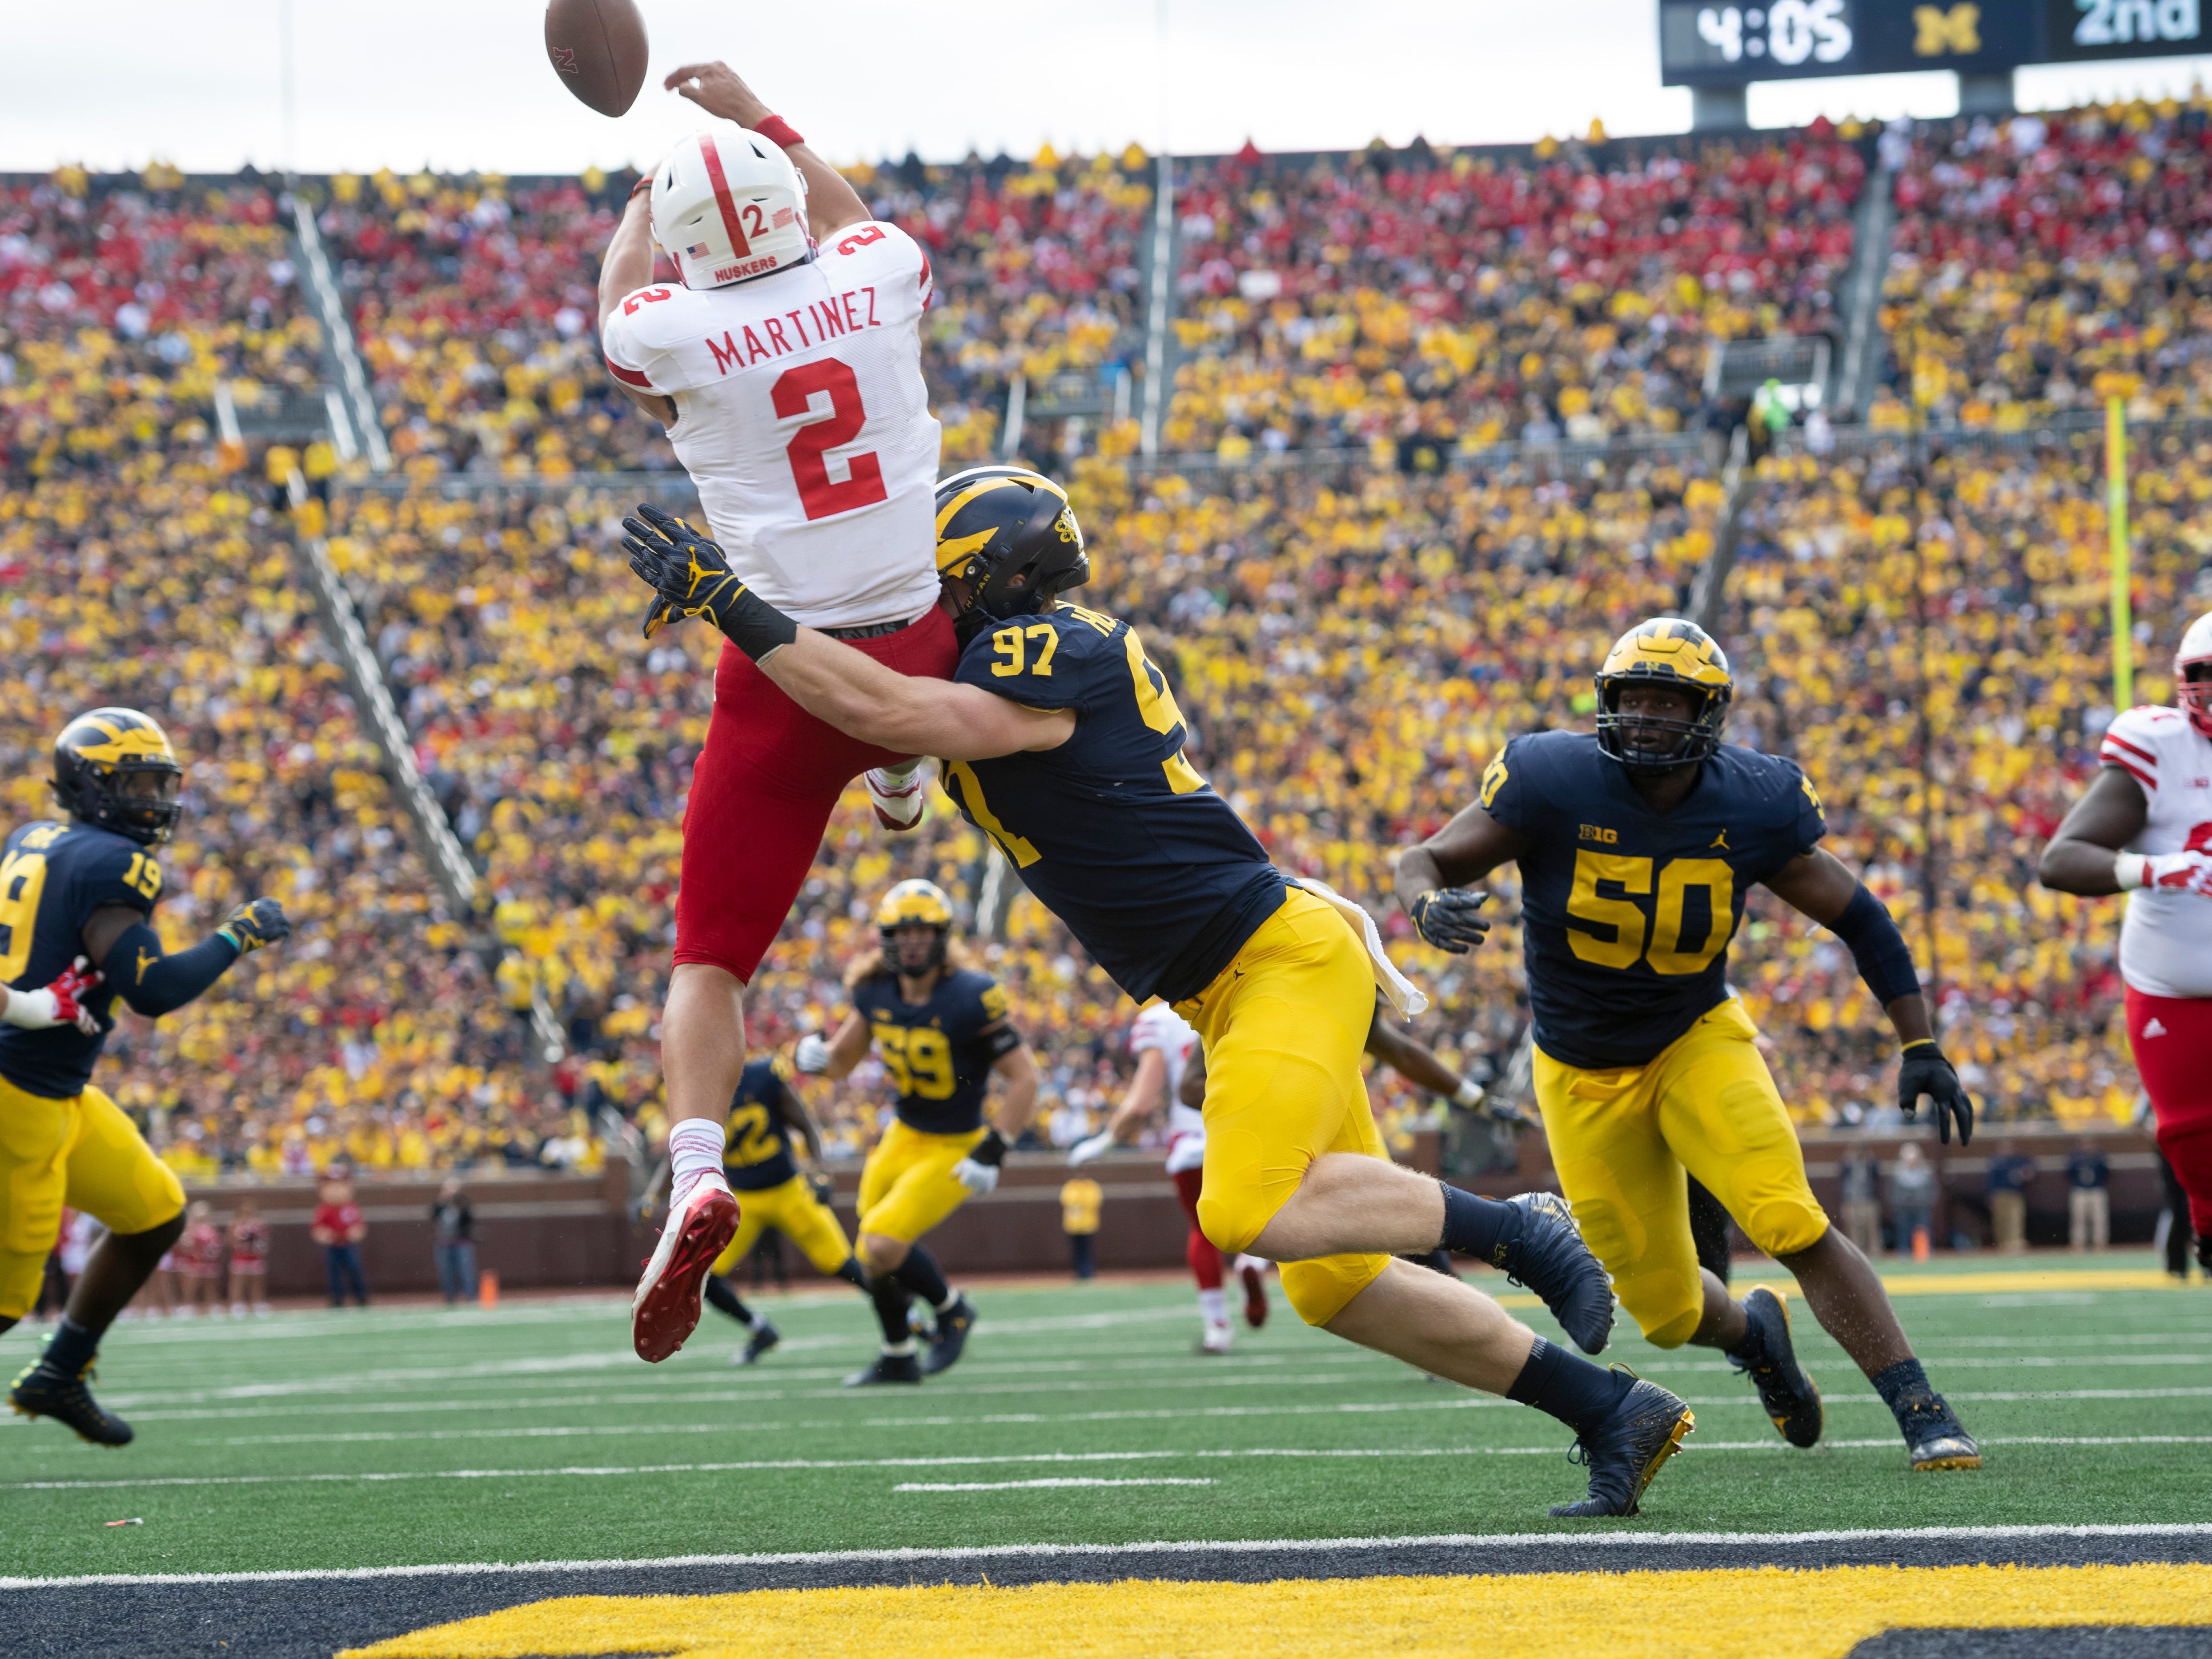 Nebraska quarterback Adrian Martinez batts down a deflected pass that came back at him in front of Michigan defensive lineman Aidan Hutchinson in the second quarter.  The play was ruled a safety. Michigan defeated Nebraska 56-10 at Michigan Stadium, in Ann Arbor on September 22, 2018. The Wolverines won ten in a row between season opening (at Notre Dame) and ending (at Ohio State) losses. The 7th-ranked Wolverines (10-2) play Florida in the Peach Bowl on Dec. 29th.